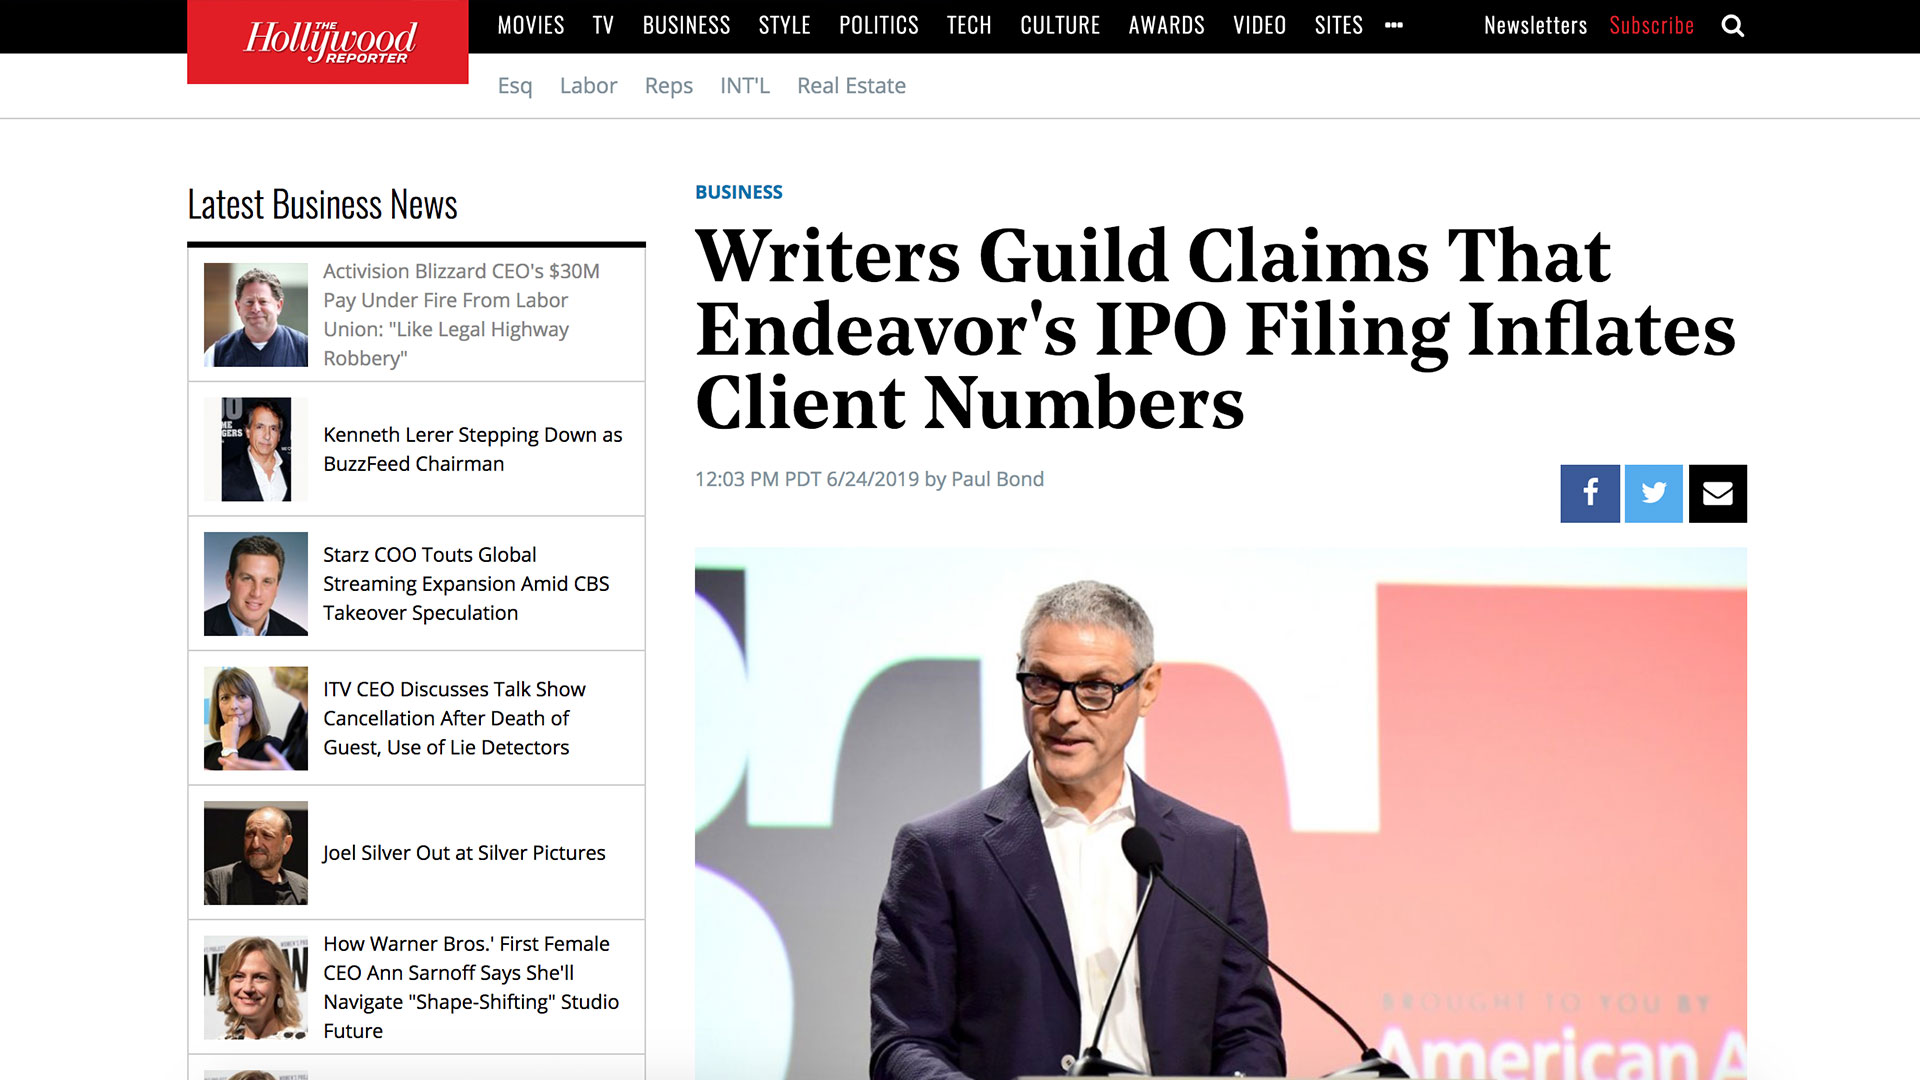 Fairness Rocks News Writers Guild Claims That Endeavor's IPO Filing Inflates Client Numbers